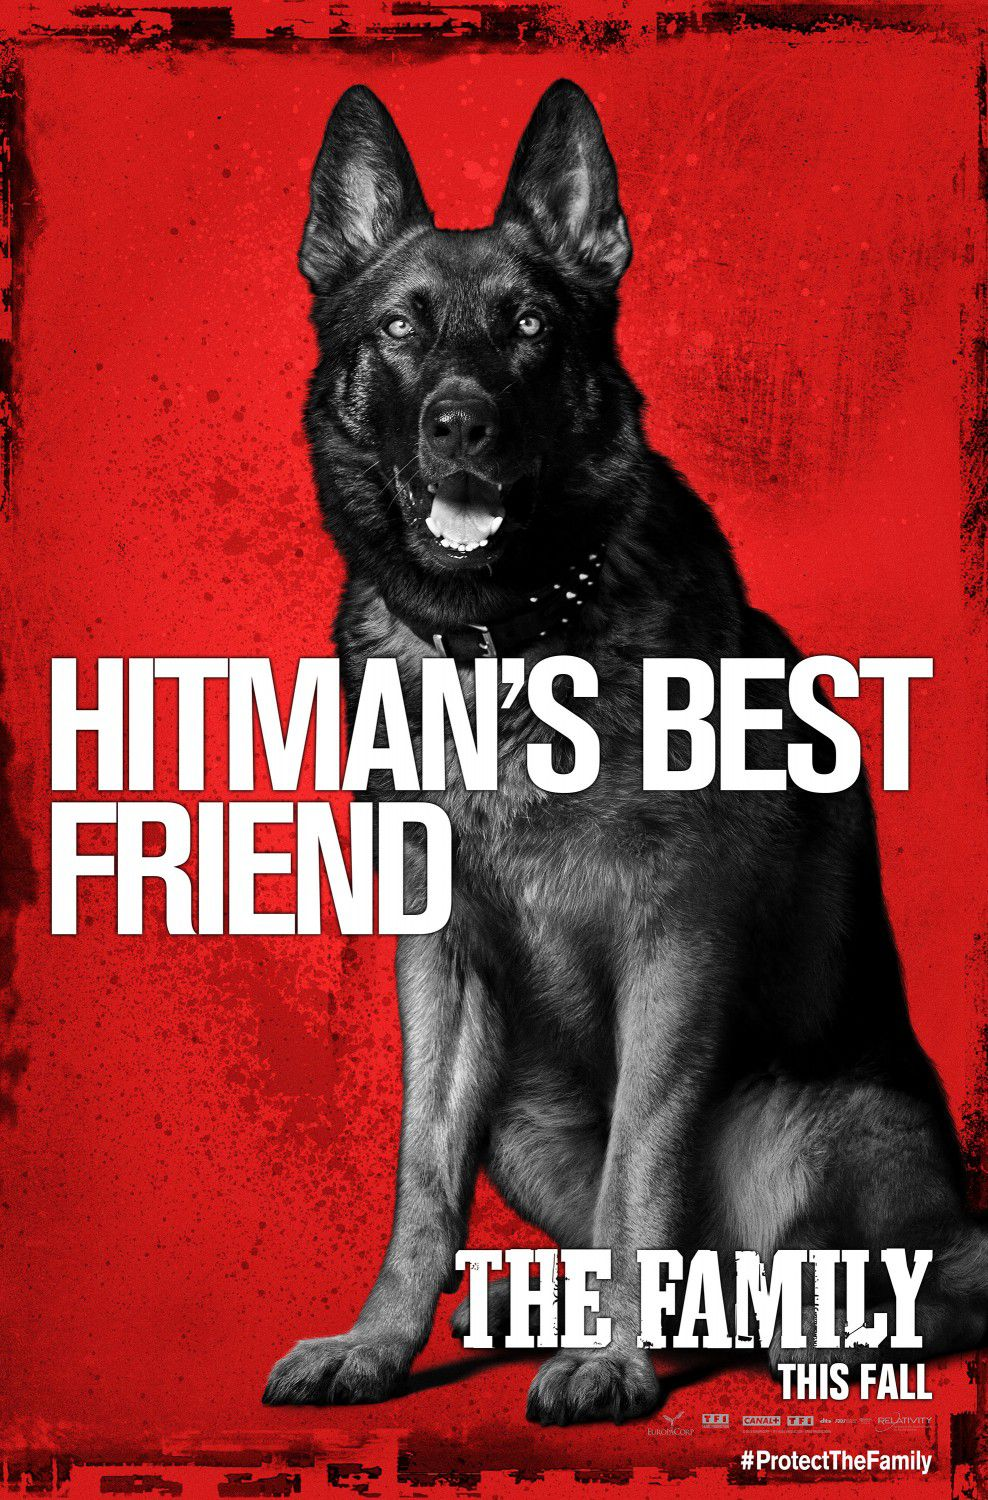 Cose nostre - Malavita - the Family - Dog - Cane - hitman's best friend - il miglior amico dell'assassino poster